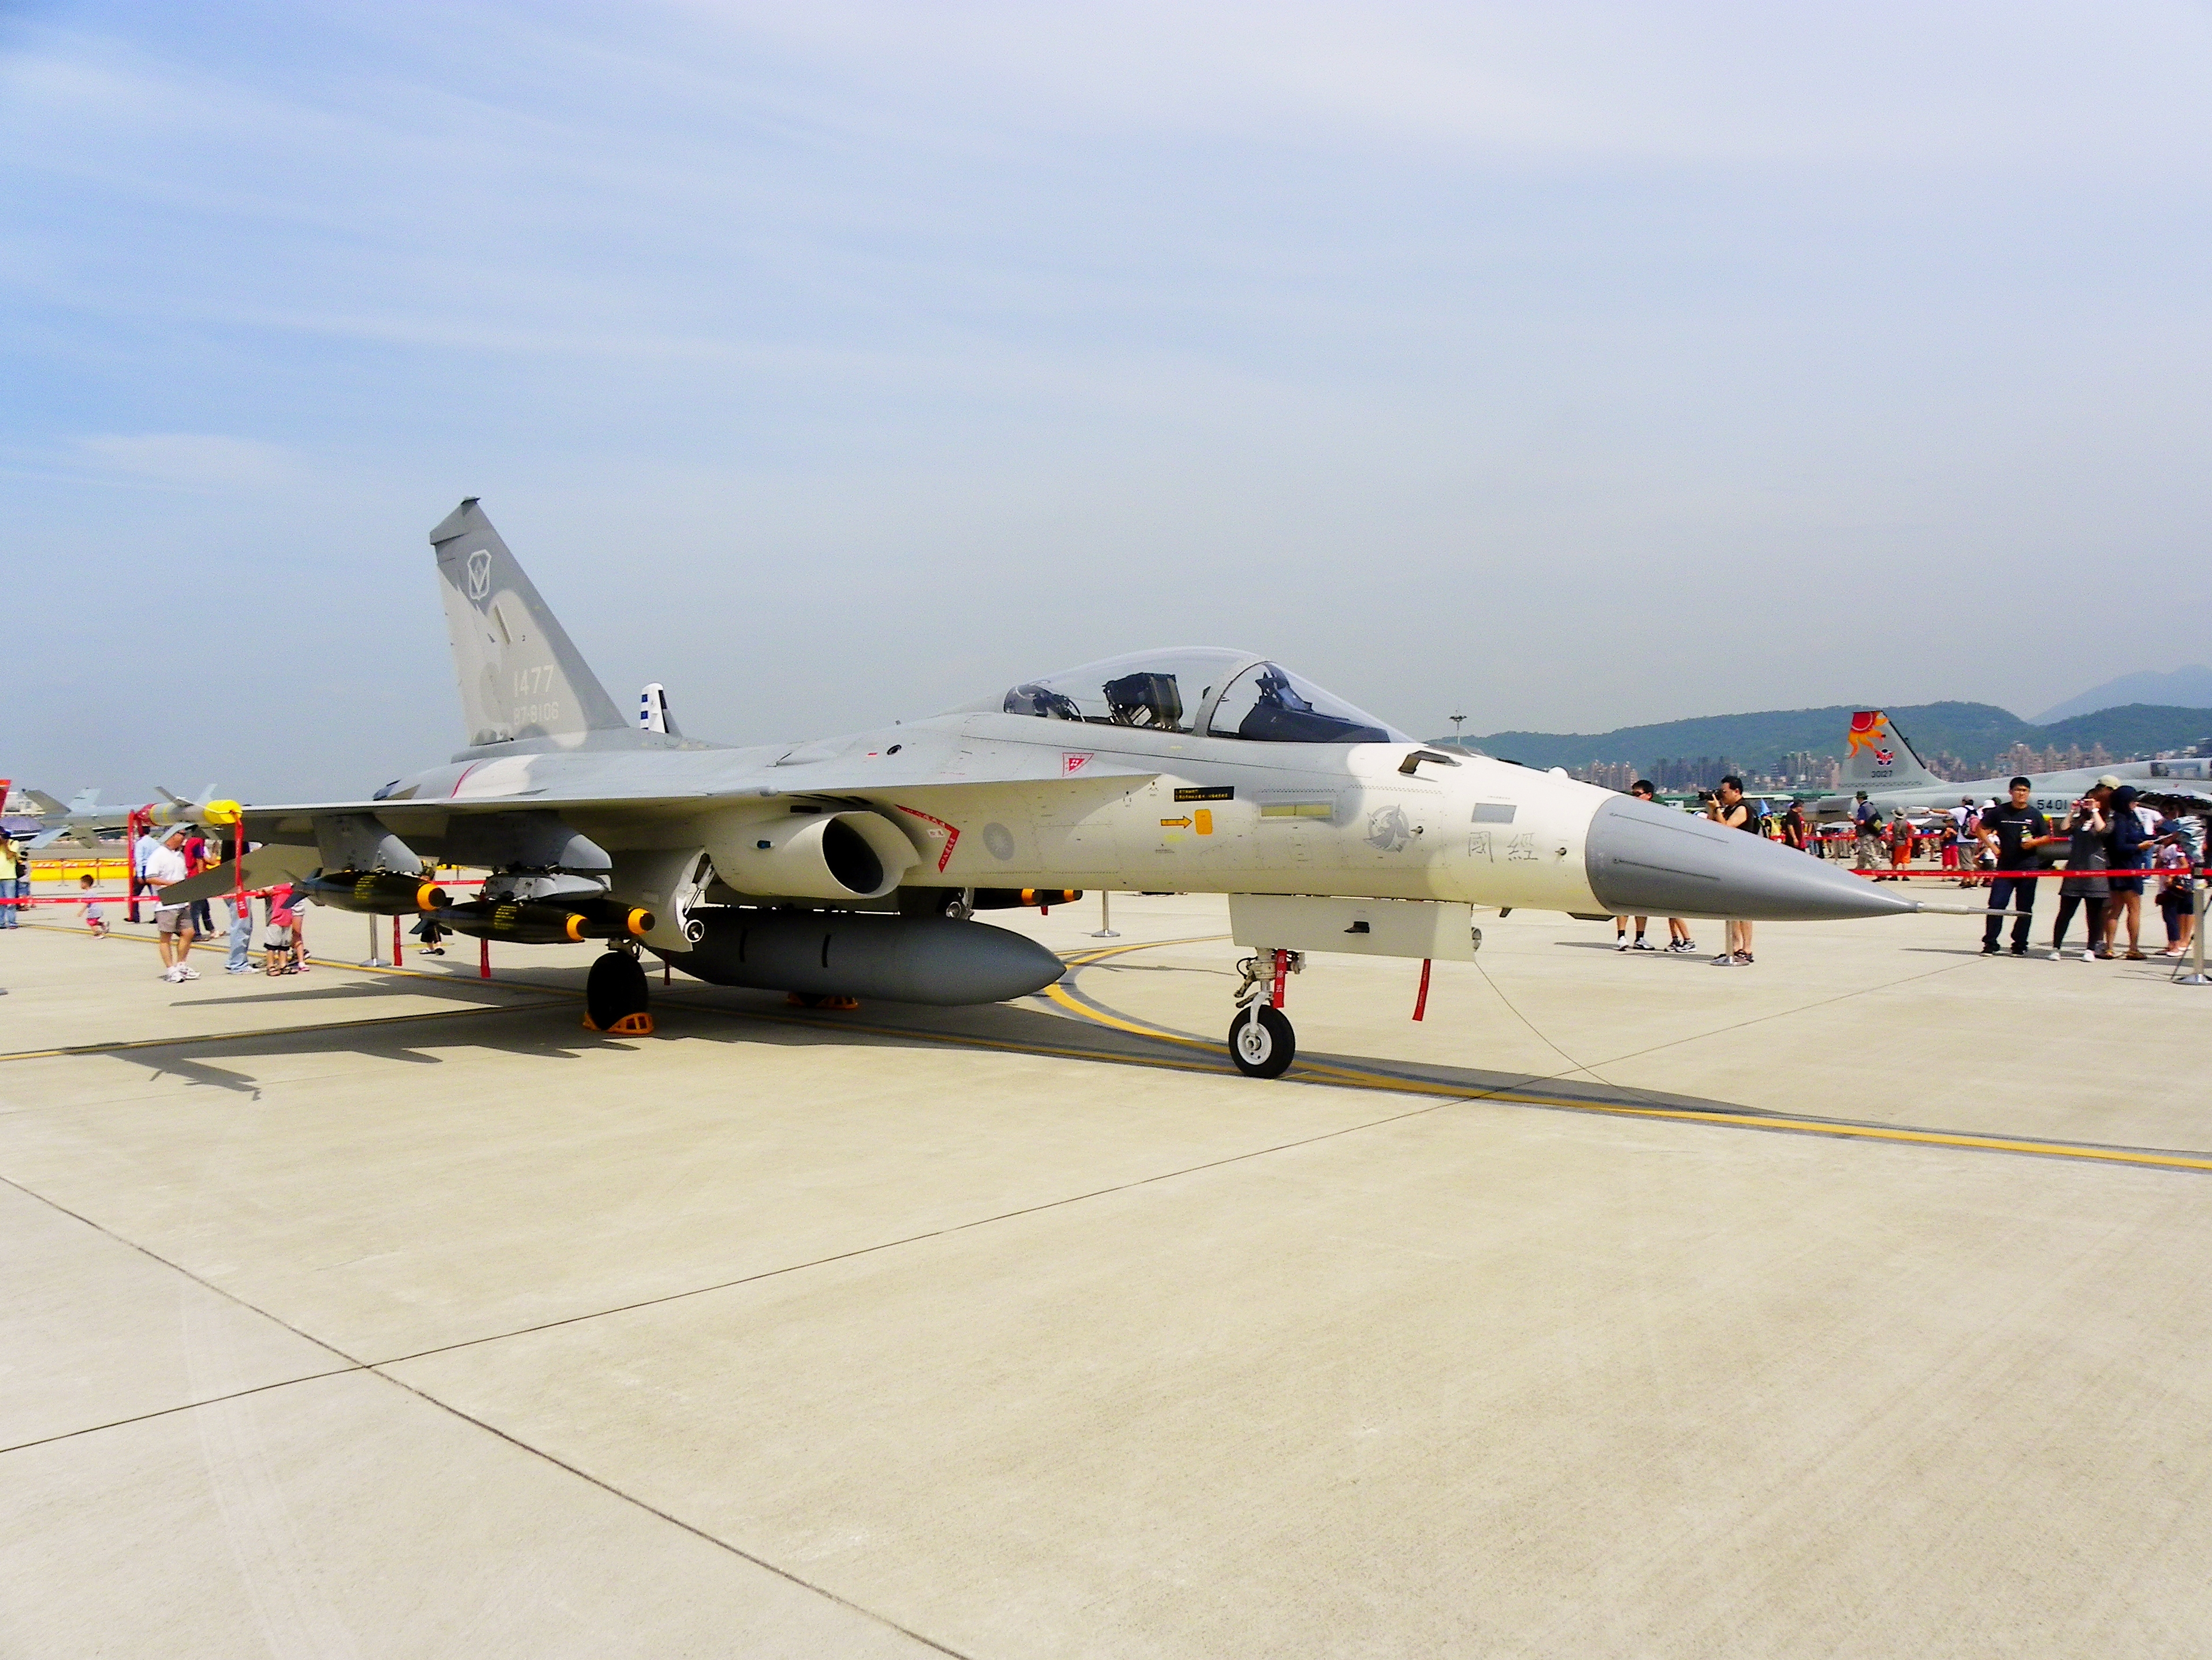 http://upload.wikimedia.org/wikipedia/commons/a/a8/IDF_F-CK-1_Display_in_ROCAF_Songshan_Air_Force_Base_20110813a.jpg